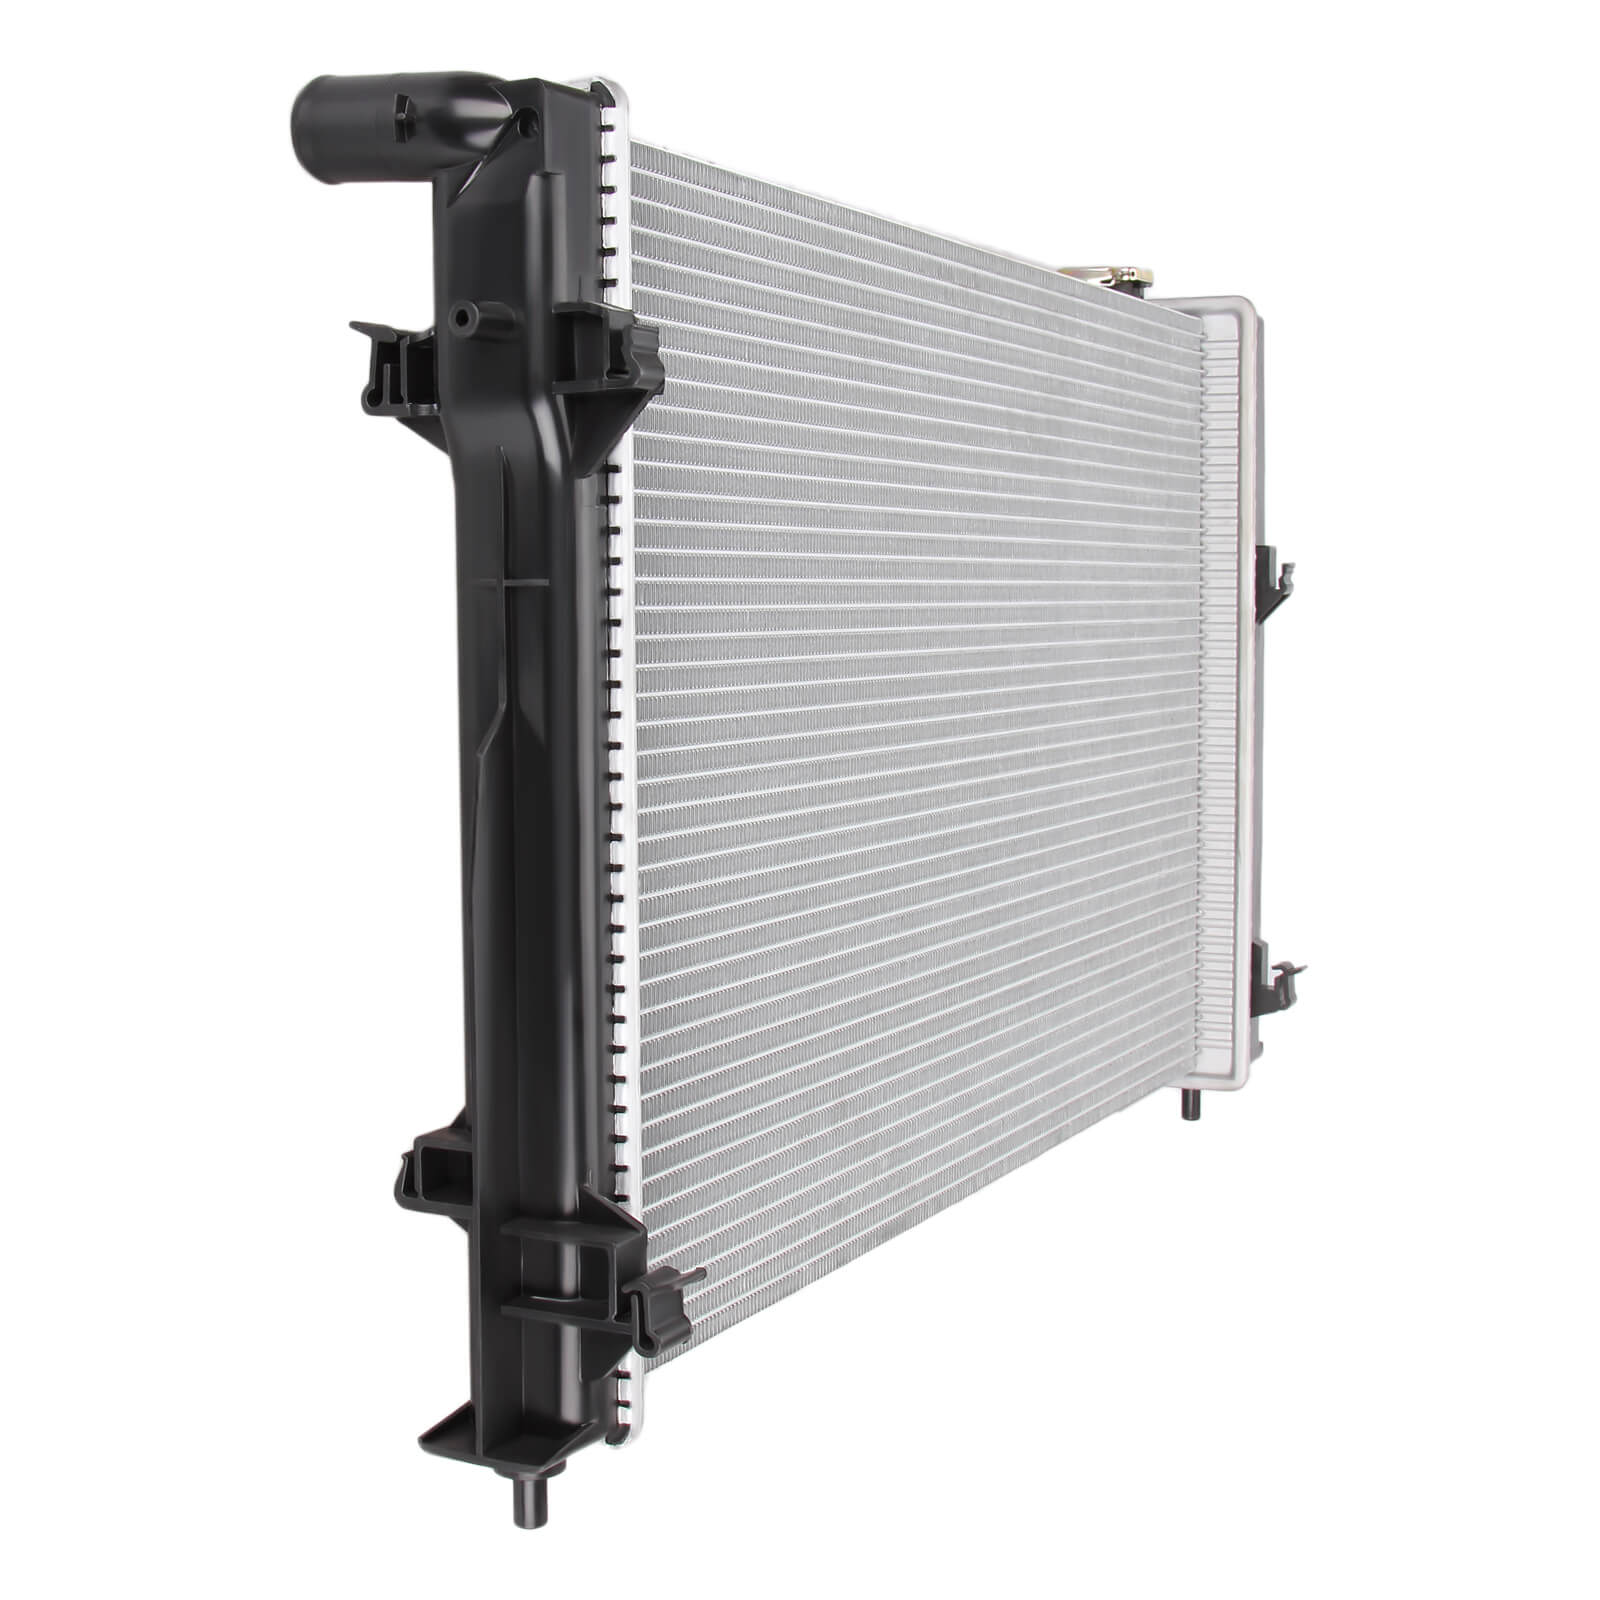 Dromedary-High Quality New 2688 Full Aluminum Radiator For Lexus Rx 330 33-202-v6-1